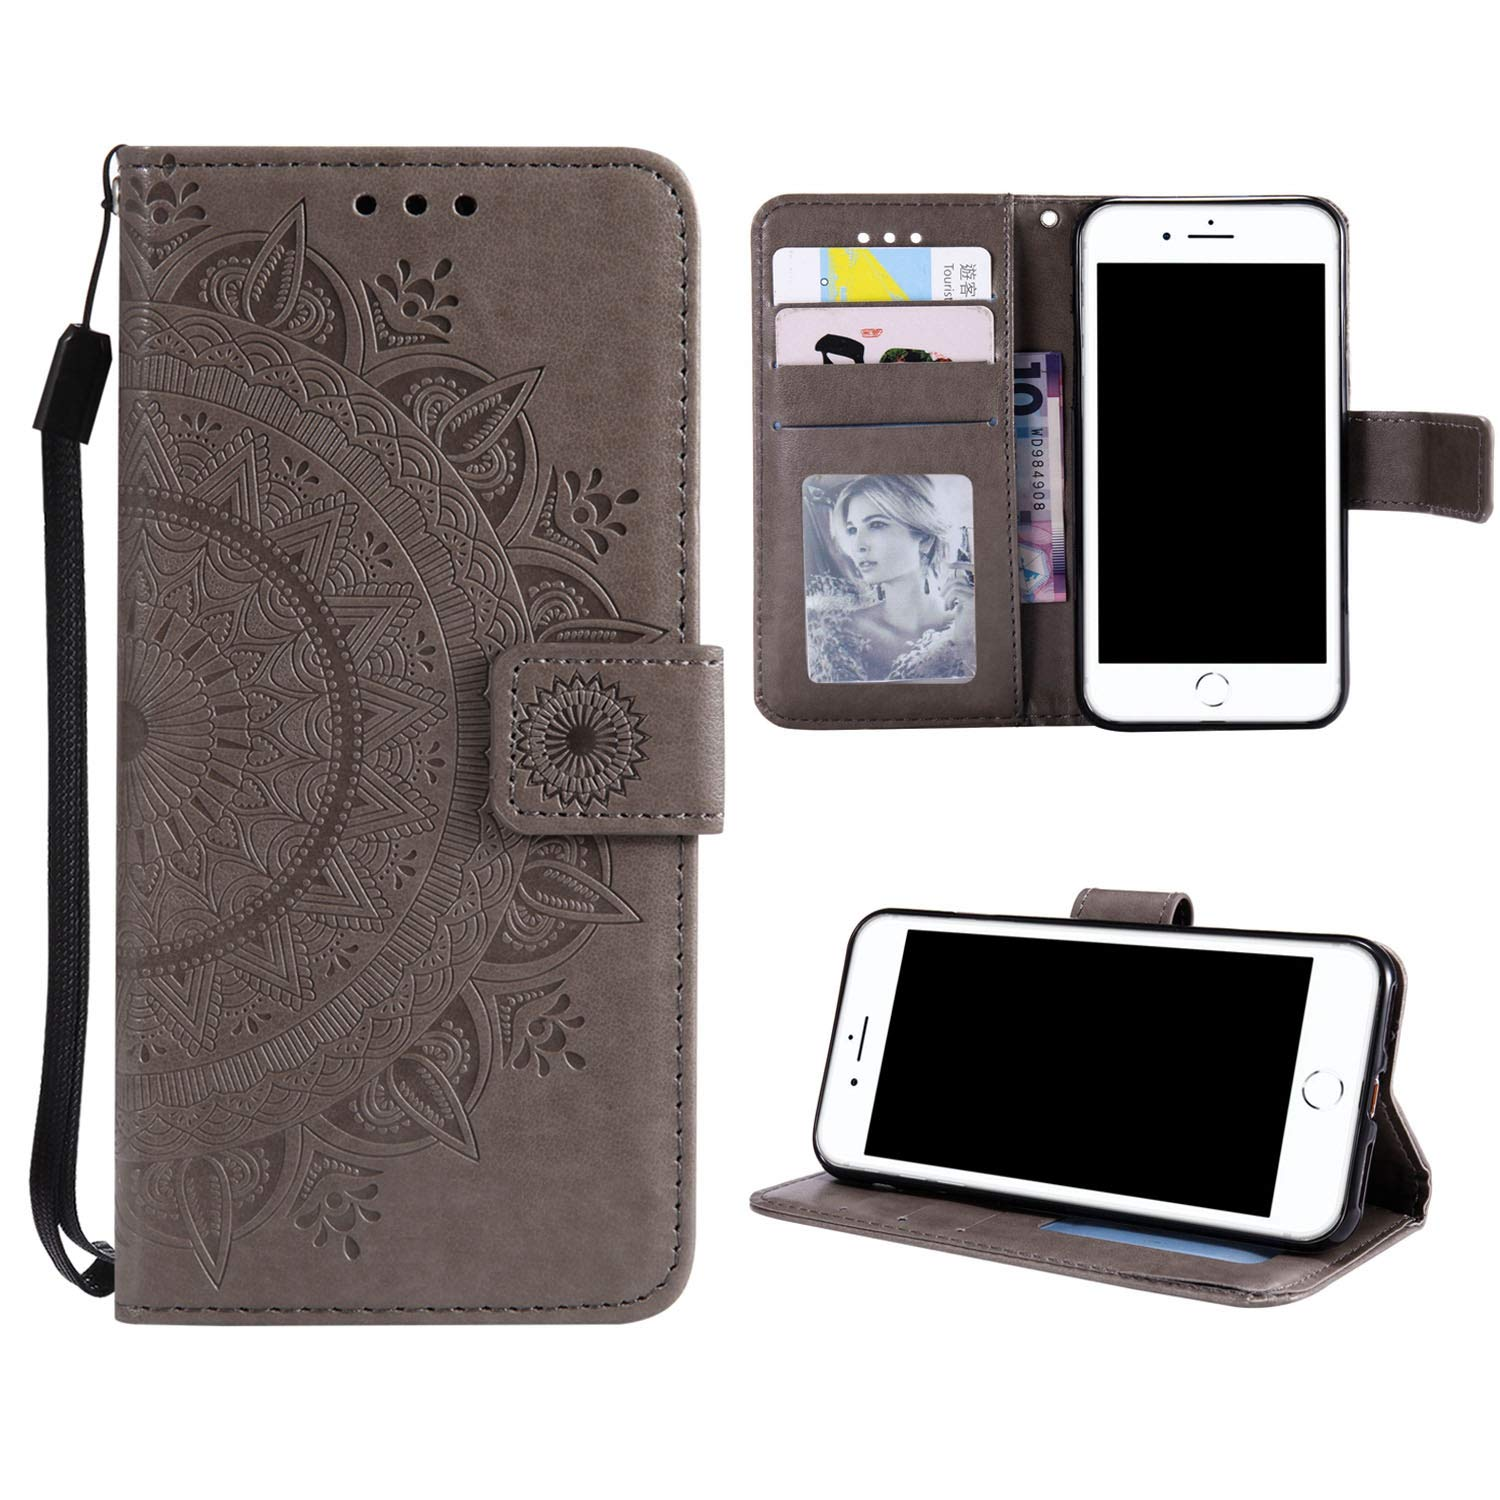 Case for iPhone 6S PU Leather Flip Wallet Cover, Mistars Tribal Mandala Flower Pattern Embossed Full Body Protection Cove with Card Holder Kickstand Magnetic Closure Shell Inner Soft TPU Silicone Bumper for Apple iPhone 6 / 6S (4.7 inch) - Grey